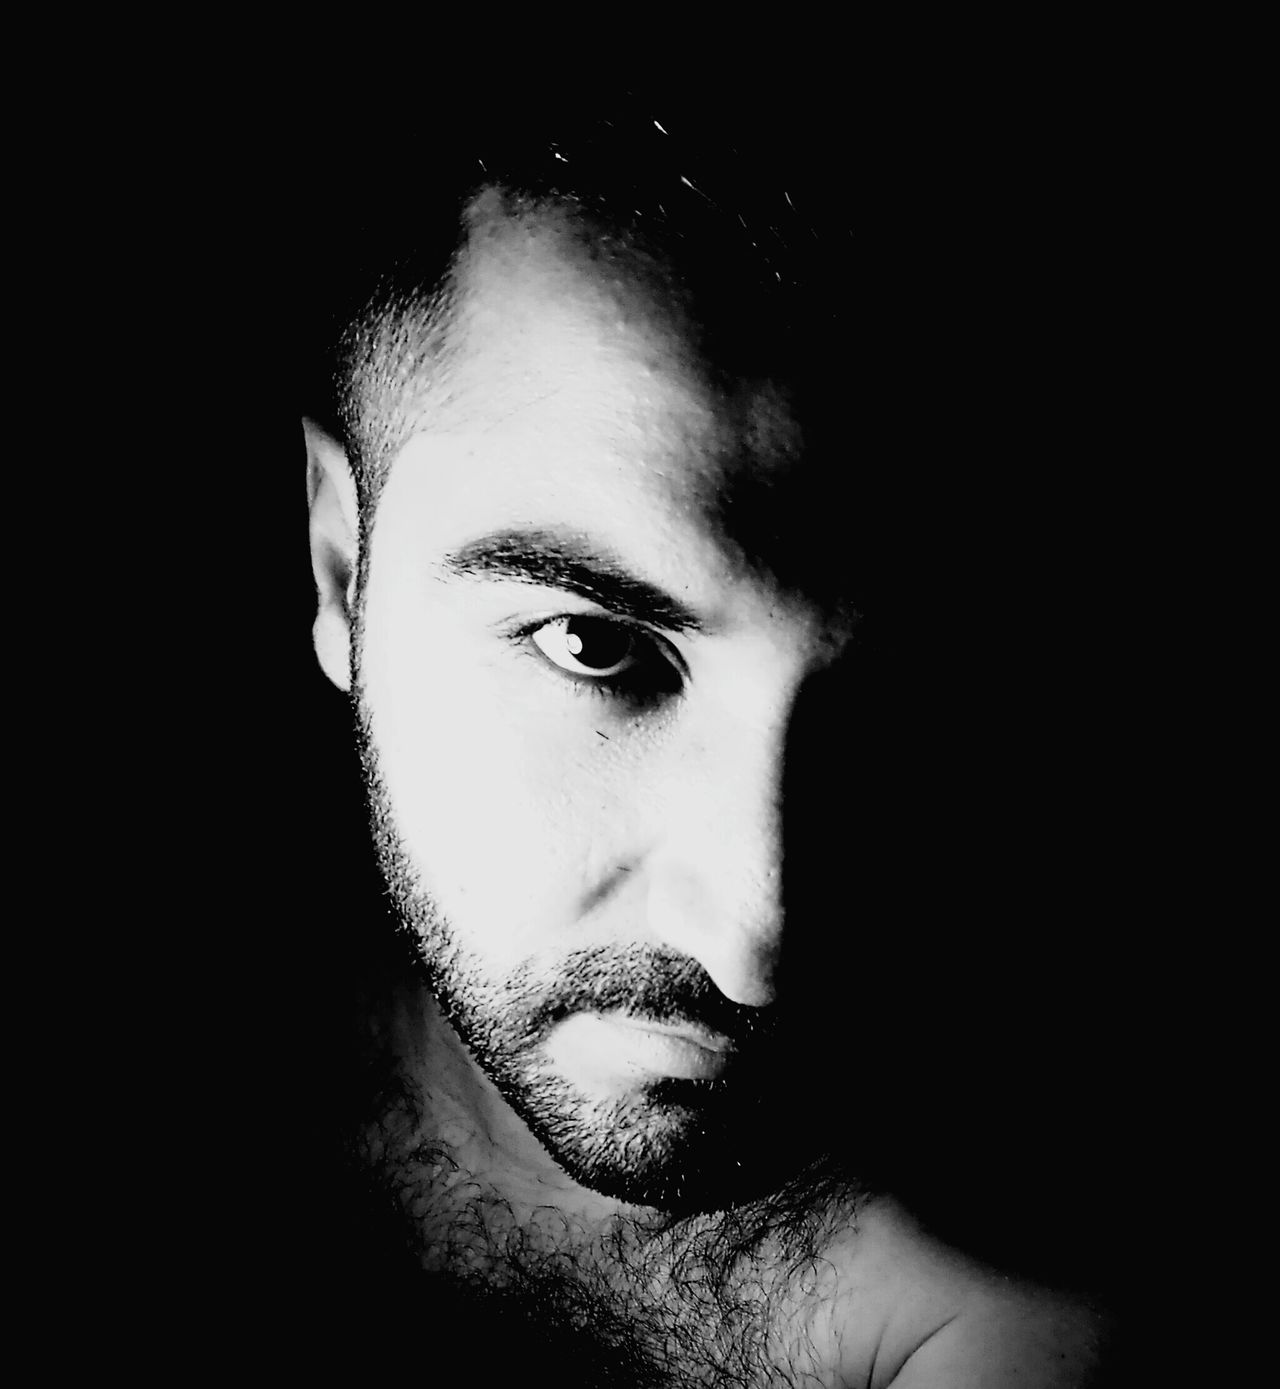 Refugee Human Face Portrait Bearded Man Black And White Young Adult Looking At Camera Black Background Close-up